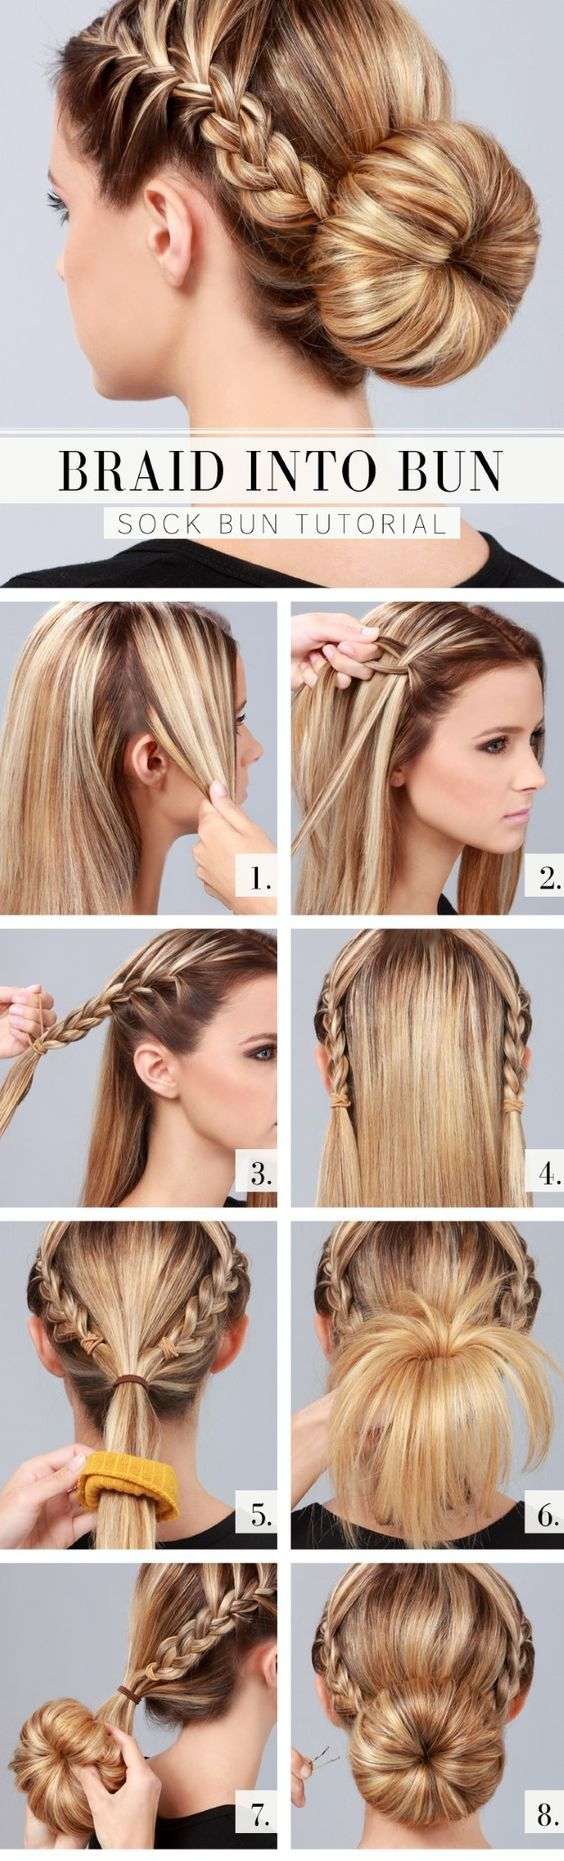 24 Perfect Prom Hairstyles | Gorgeous Hair Updo For Long and Short Hair by Makeup Tutorials http://makeuptutorials.com/hair-styles-24-perfect-prom-hairstyles/: